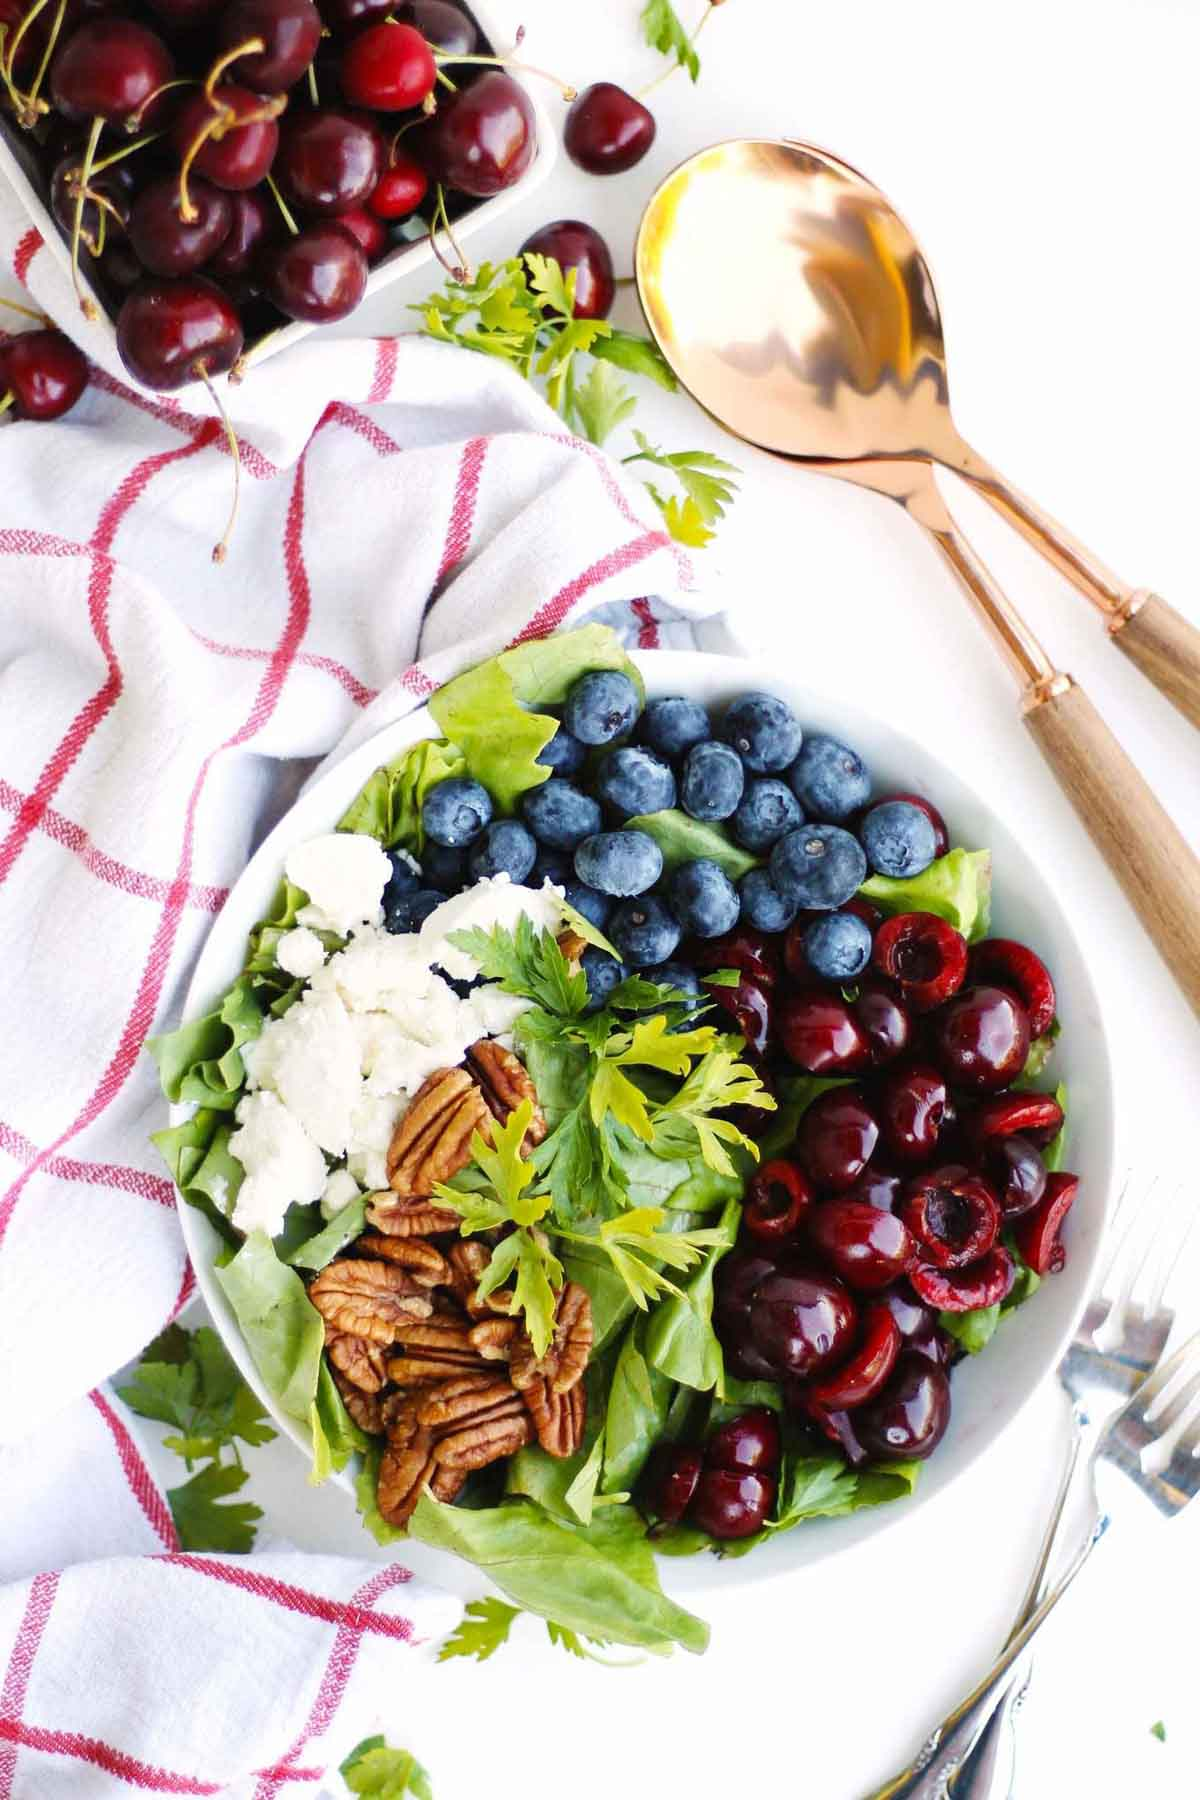 4th of July Side dish recipe with blueberries and cherries